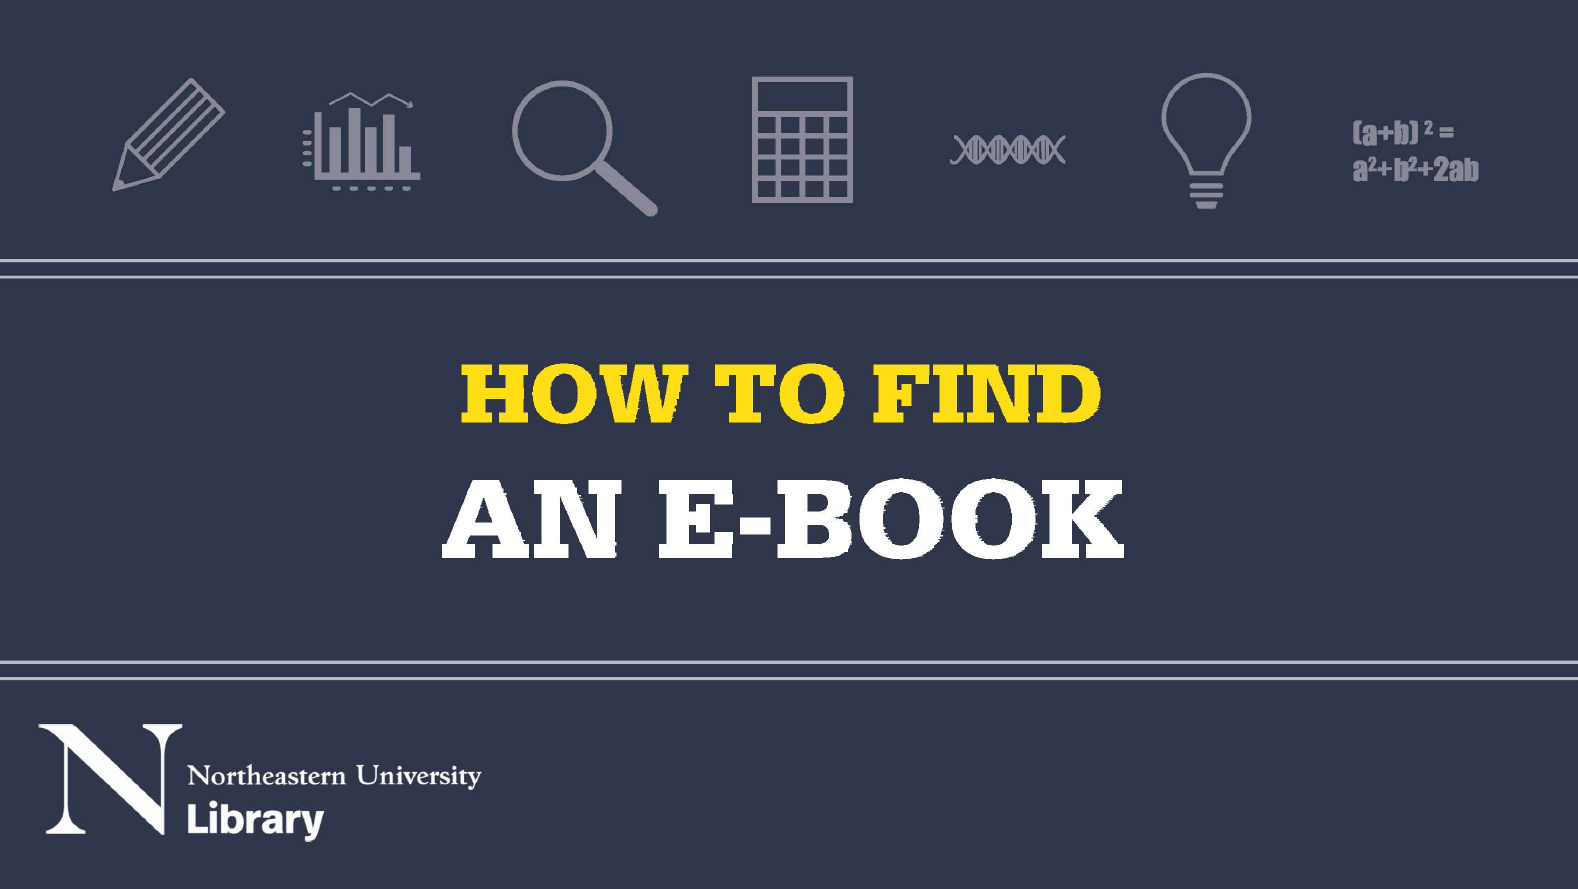 How to find an e-book